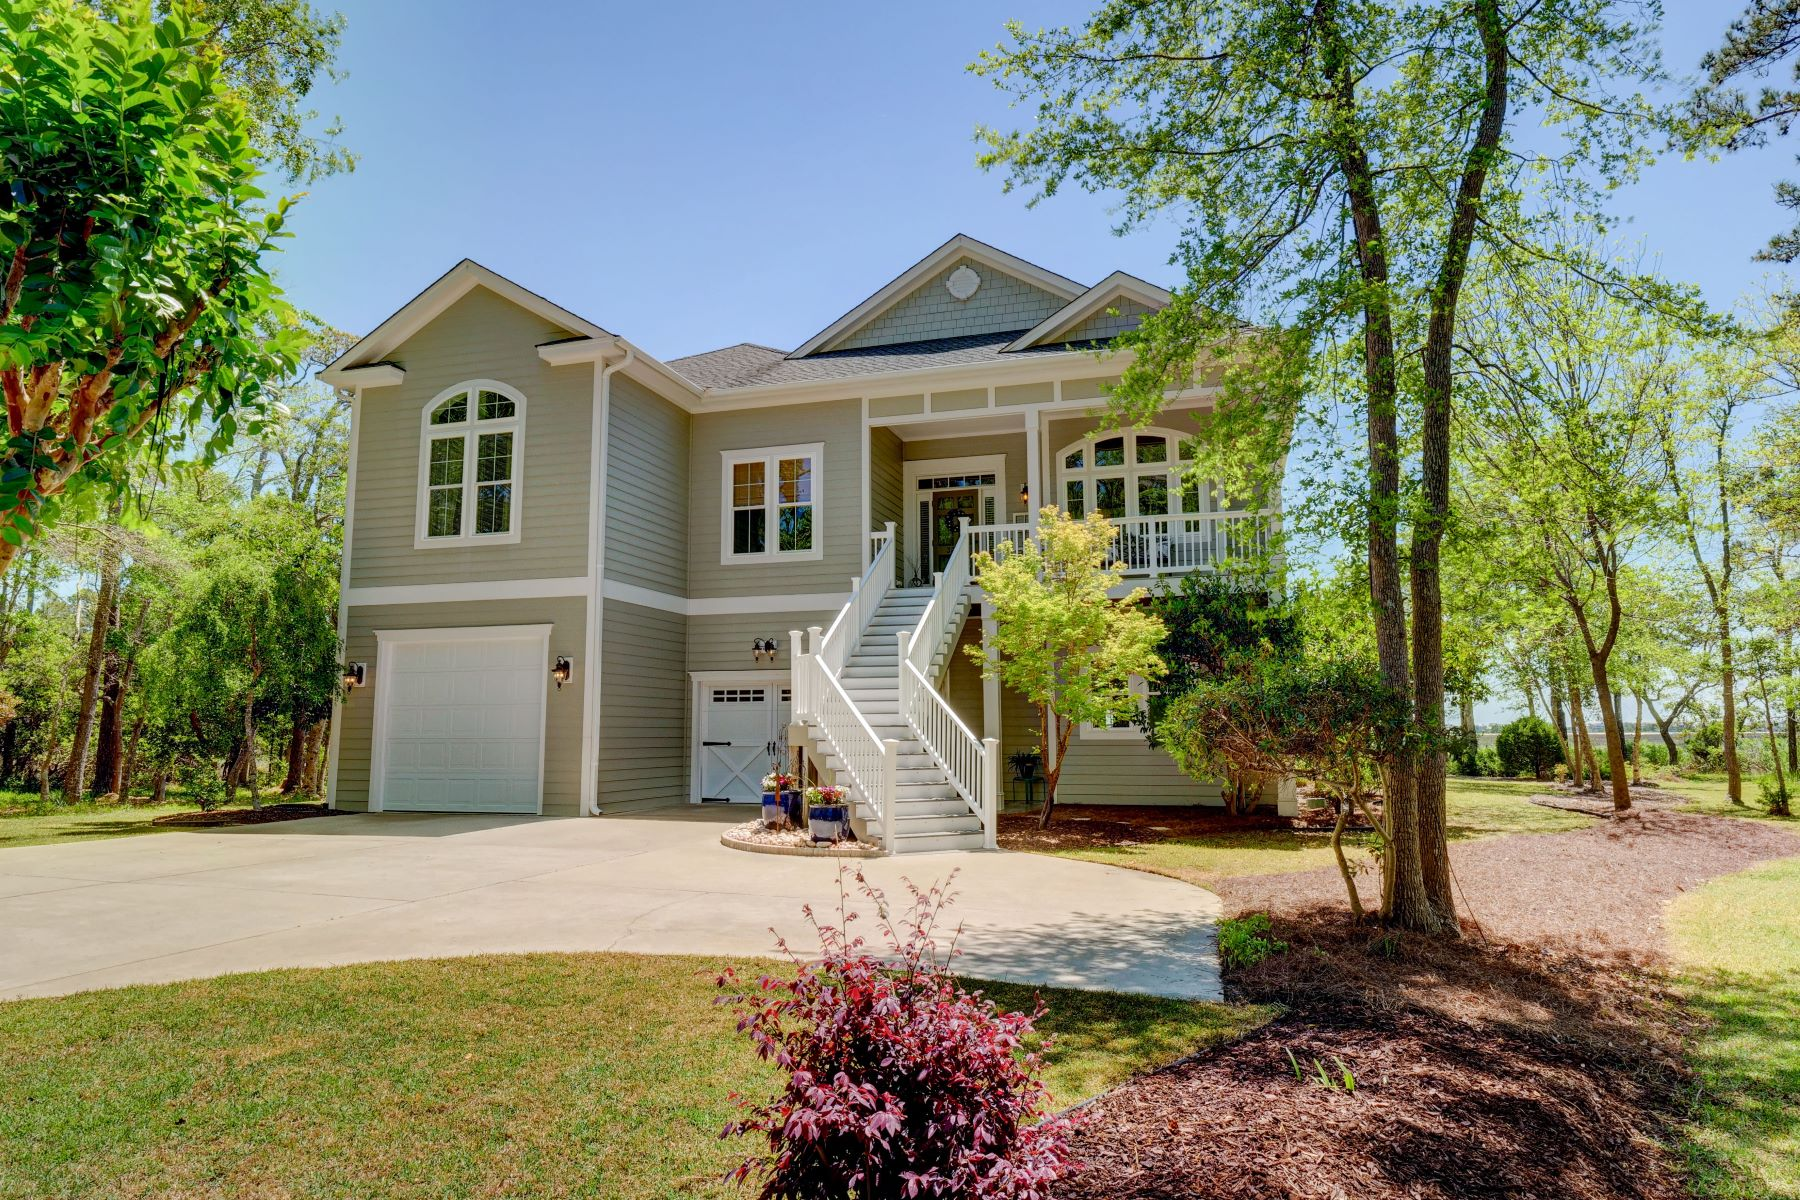 Single Family Homes for Sale at Spectacular Marsh Front Property 3271 Marsh View Drive Supply, North Carolina 28462 United States